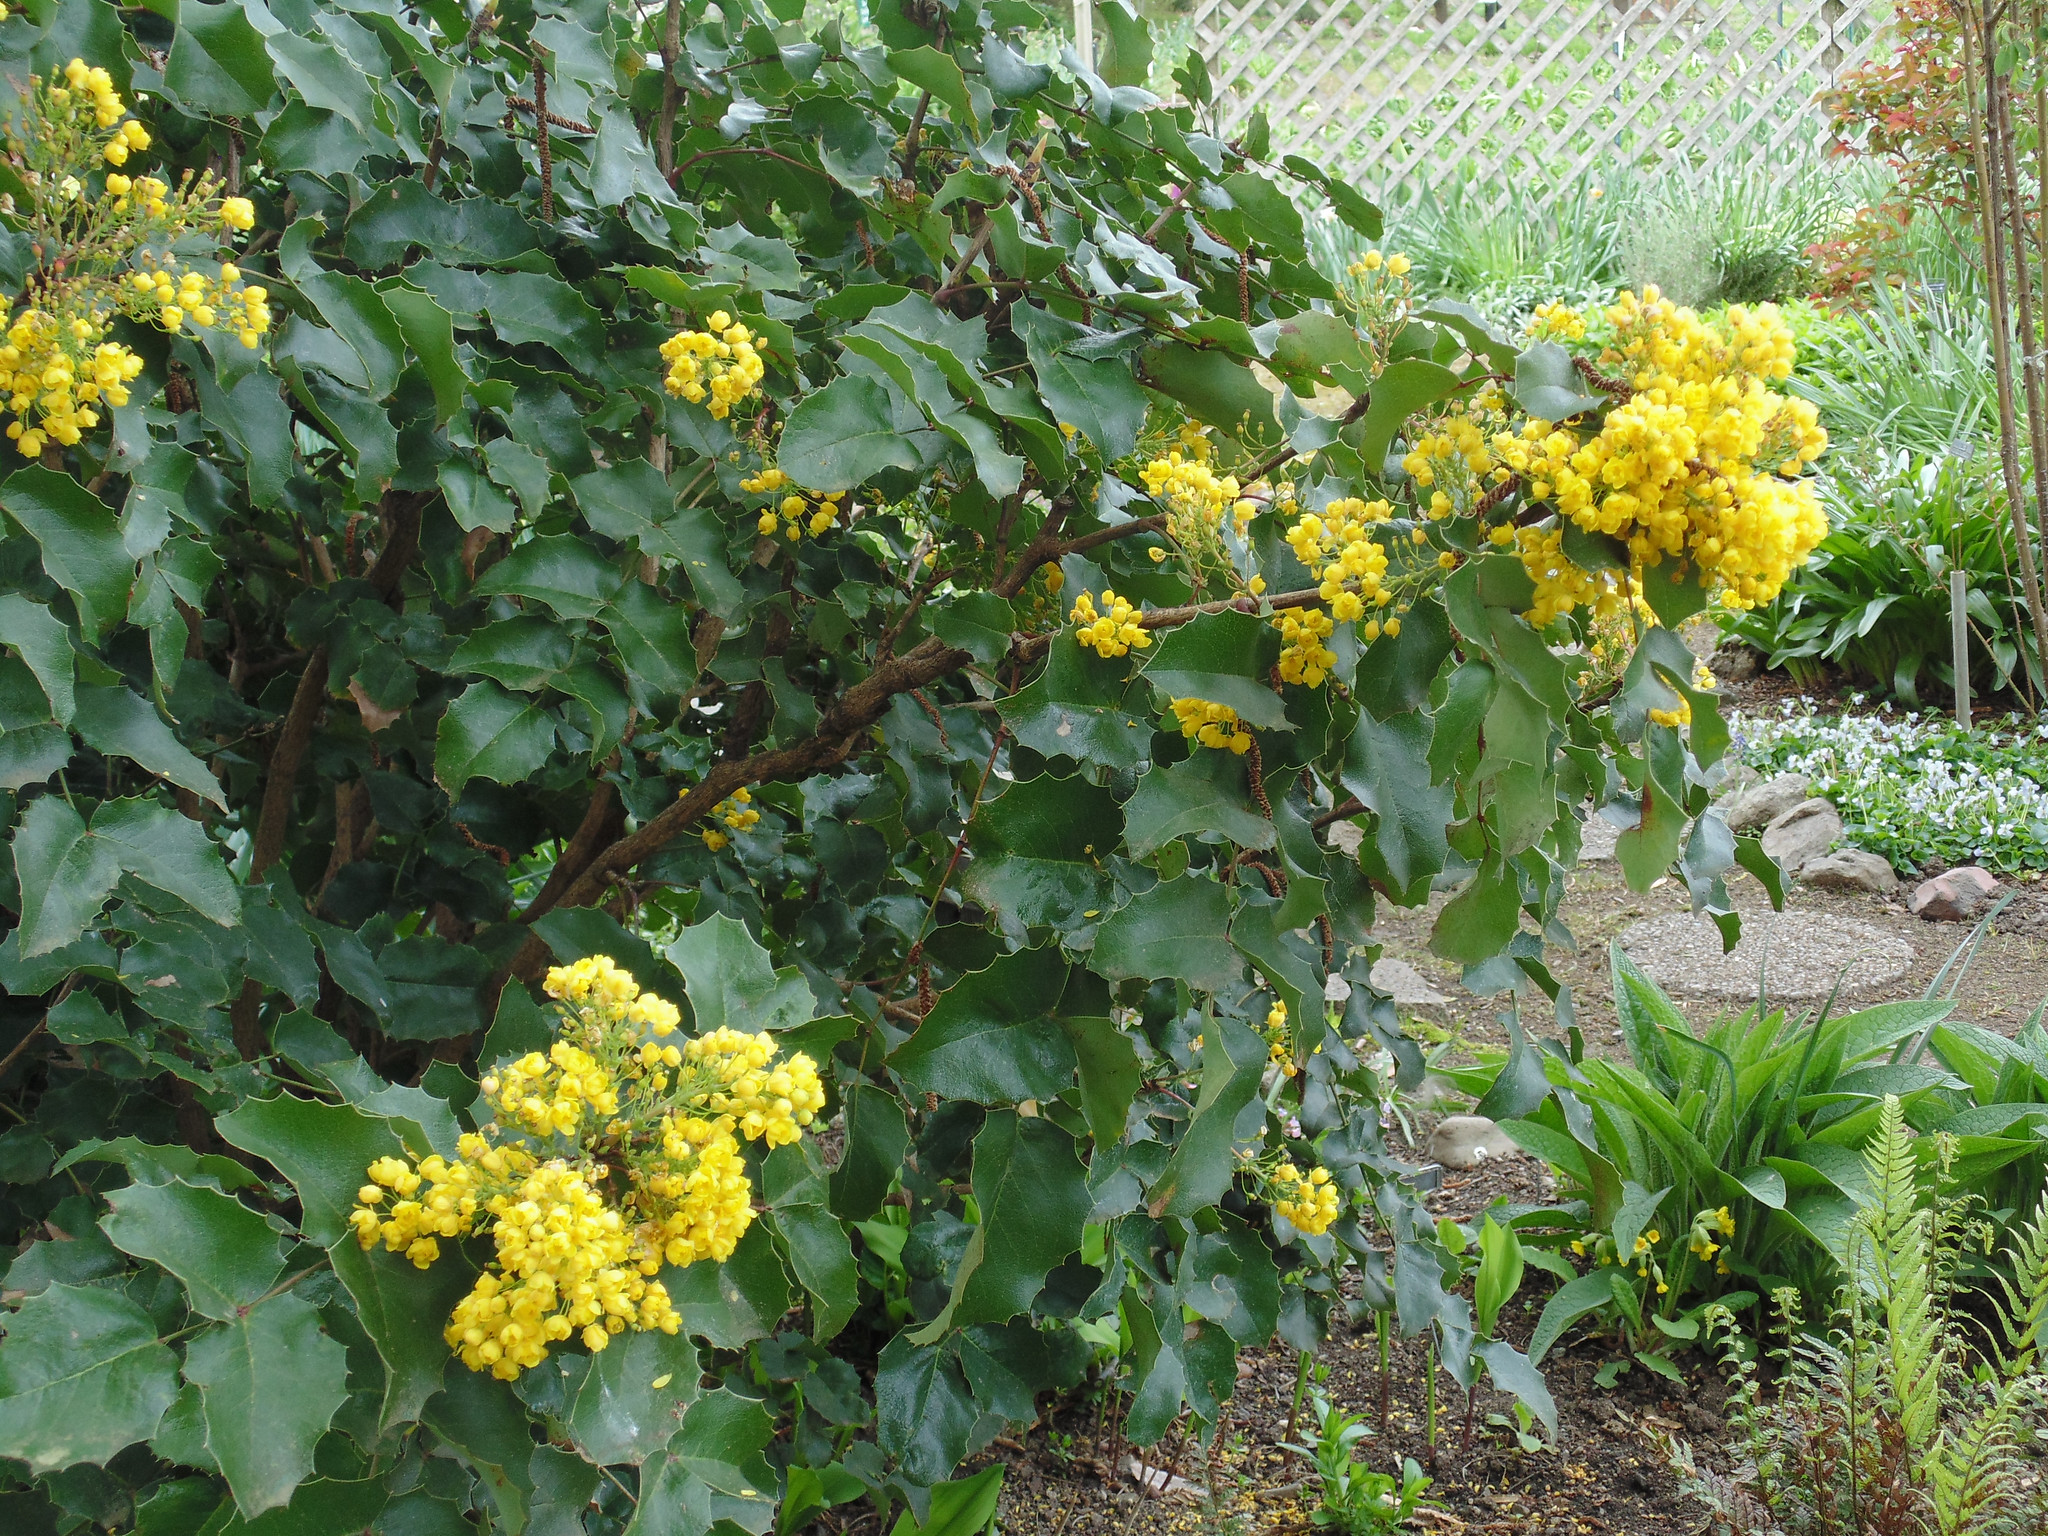 Popularity of native plants on the rise